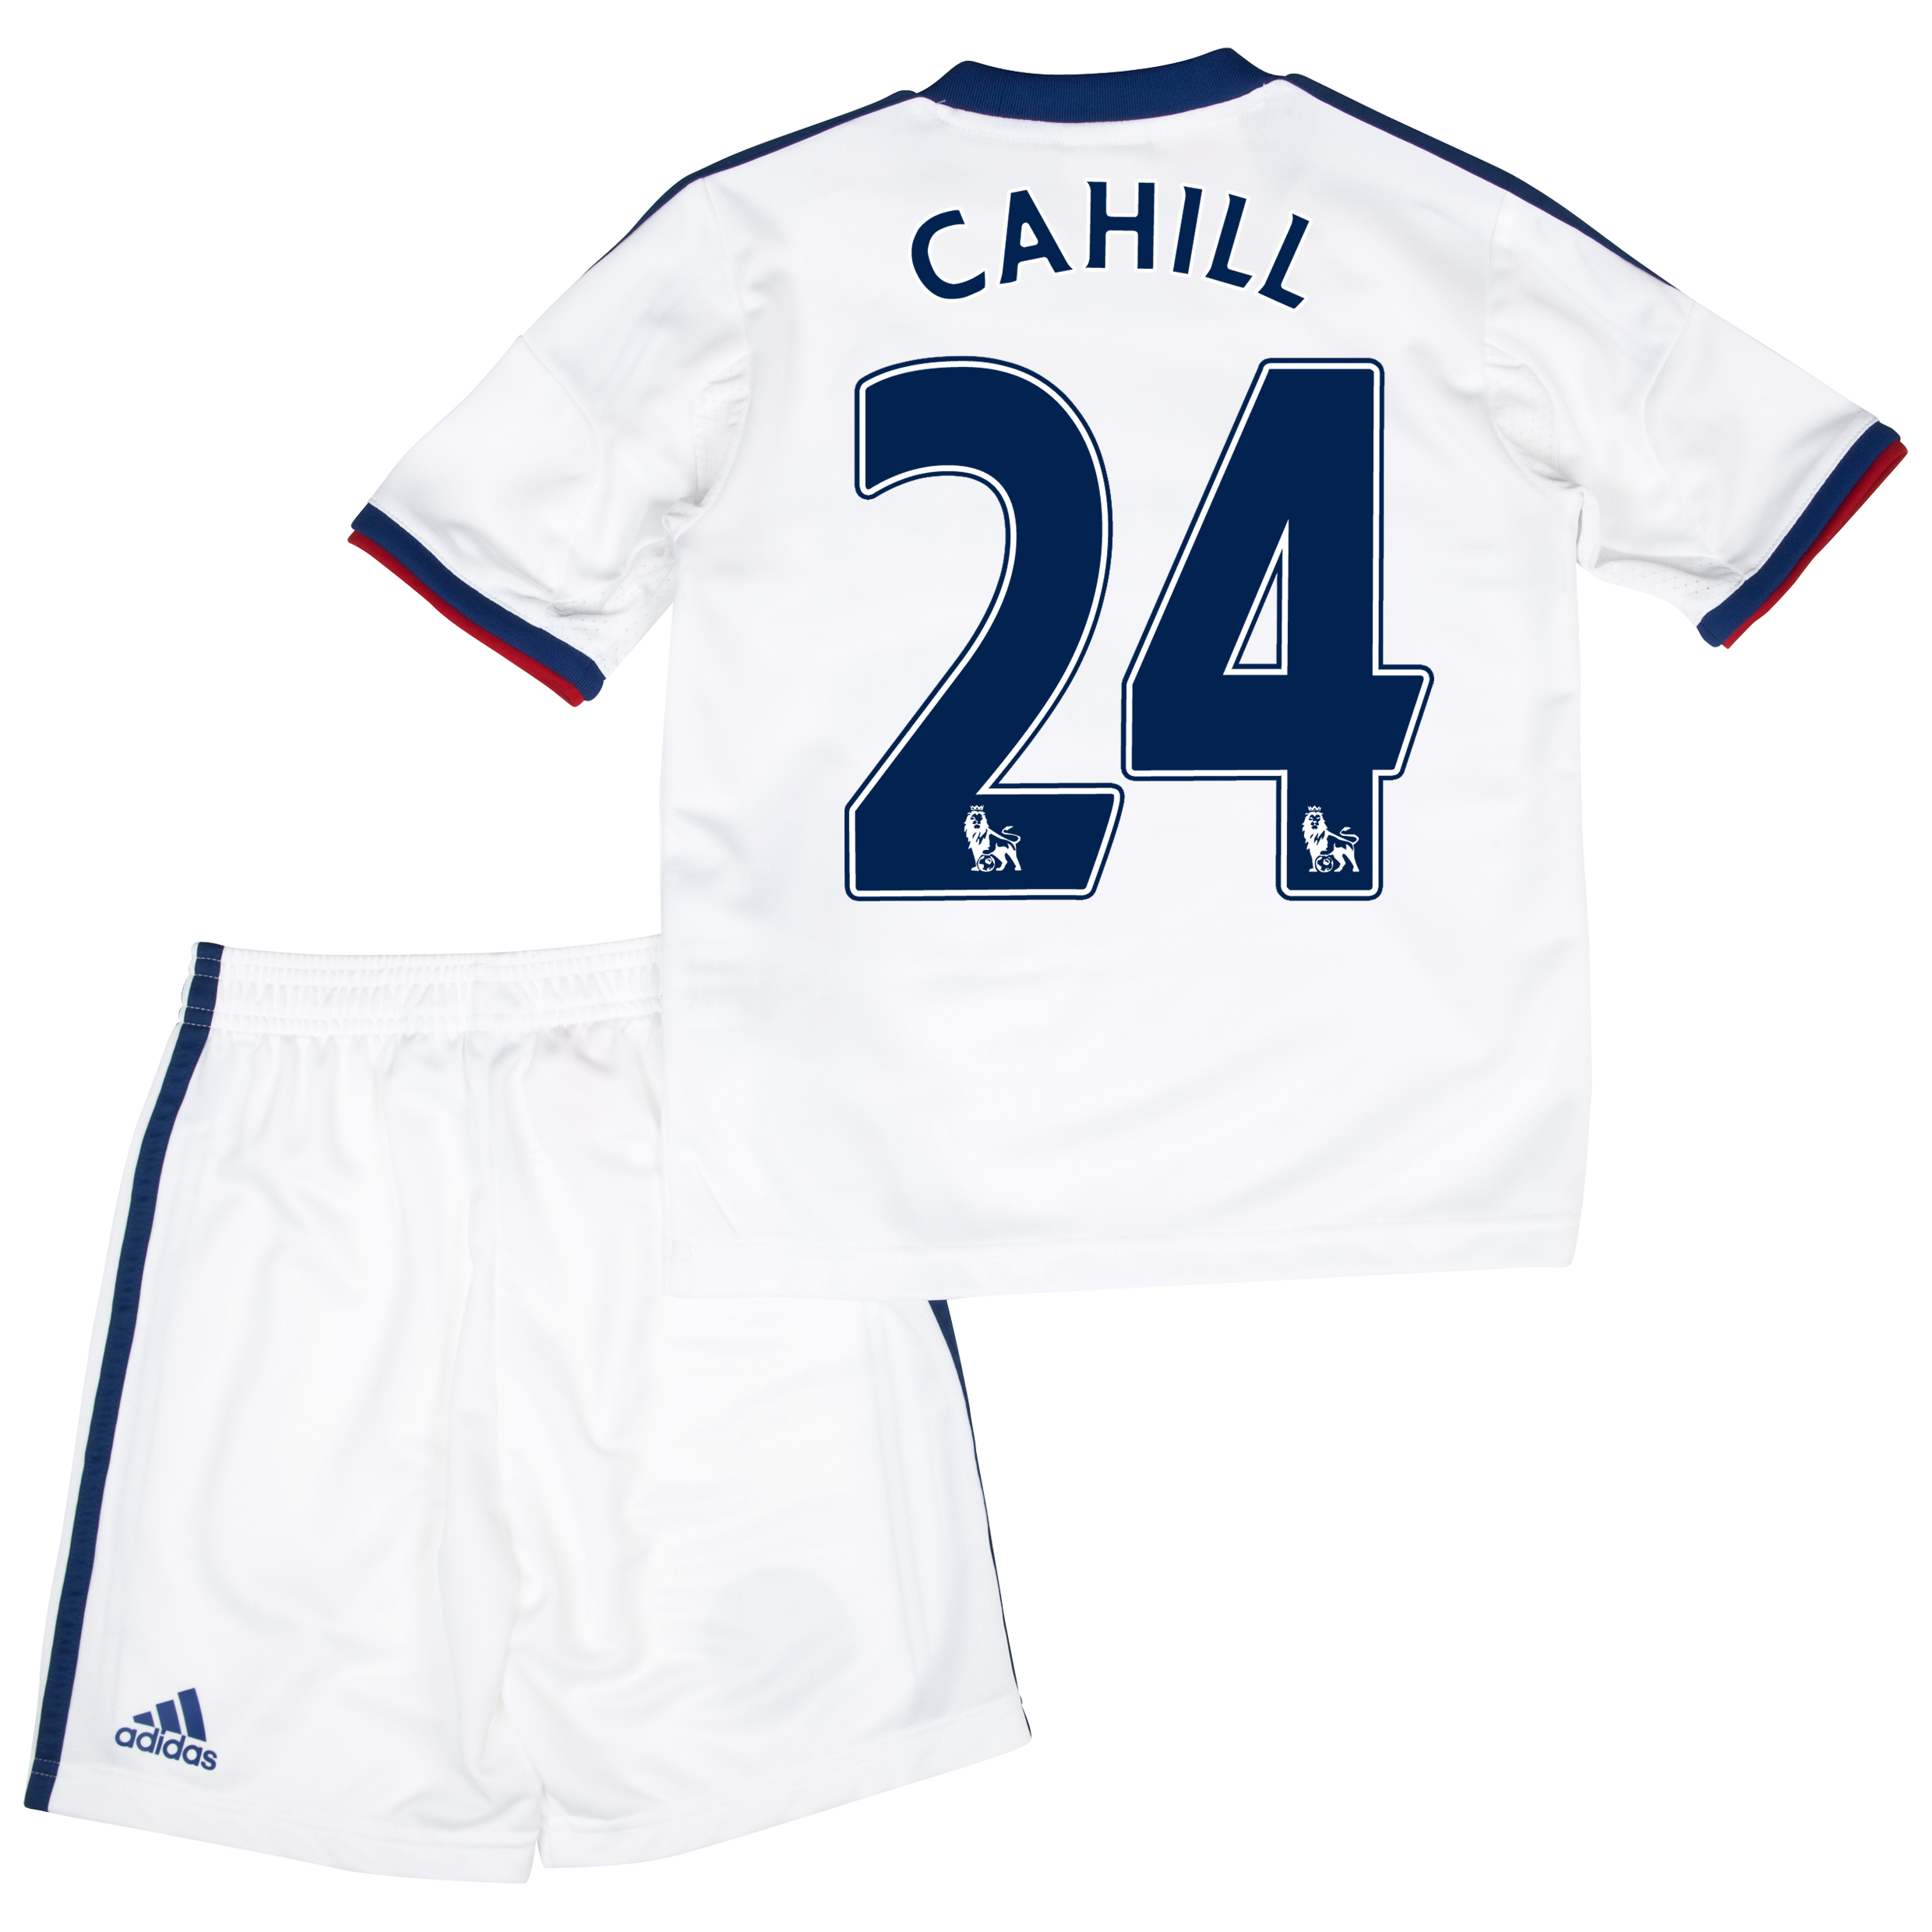 Chelsea Away Mini Kit 2013/14 with Cahill 24 printing